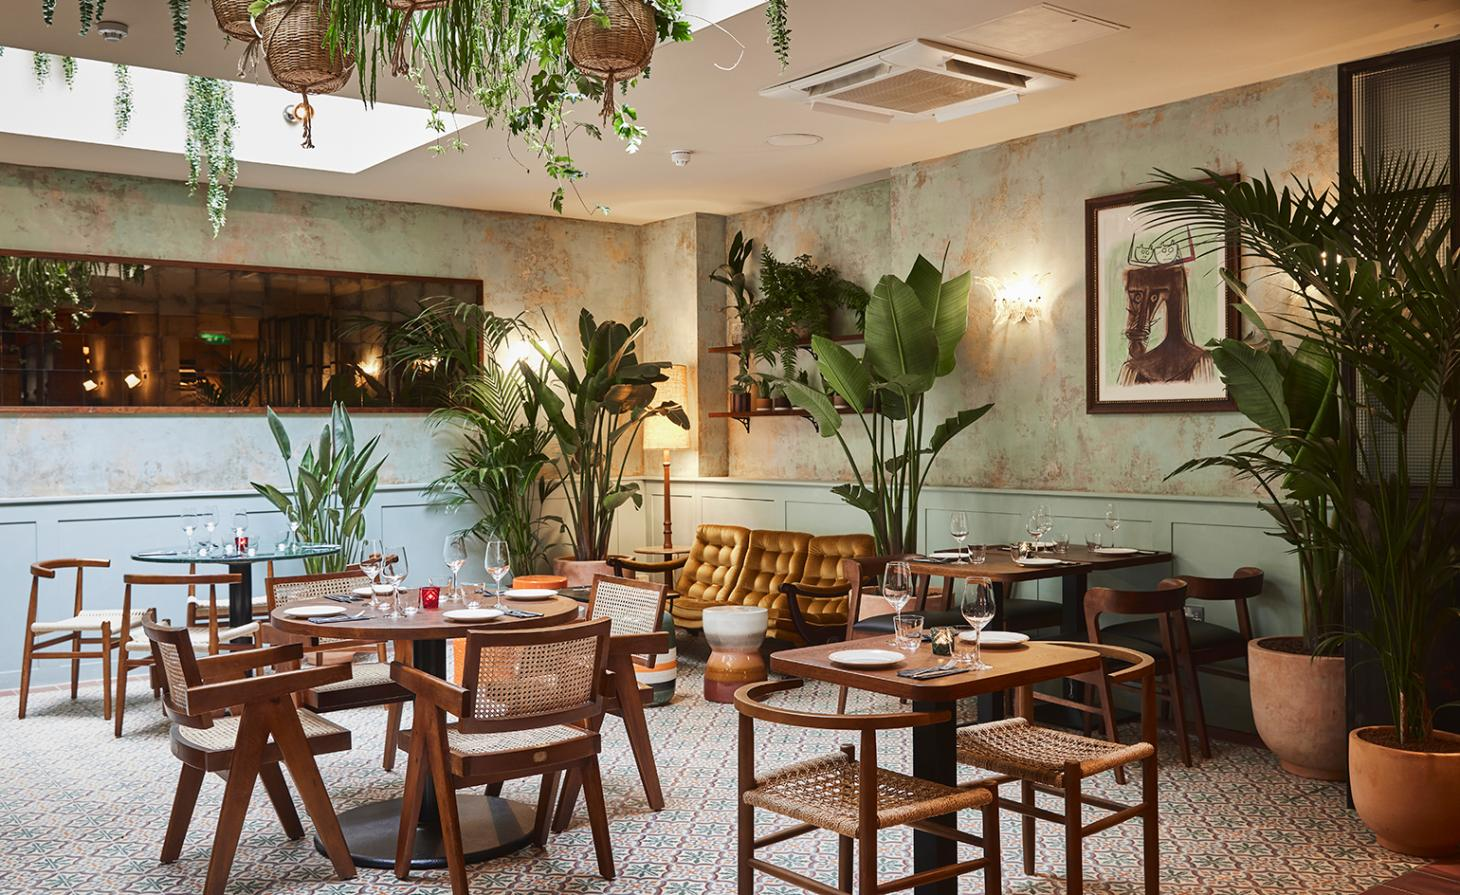 The 'decadence of 1950s Havana' was the catalyst for Bar La Rampa's vintage-tinged interiors.